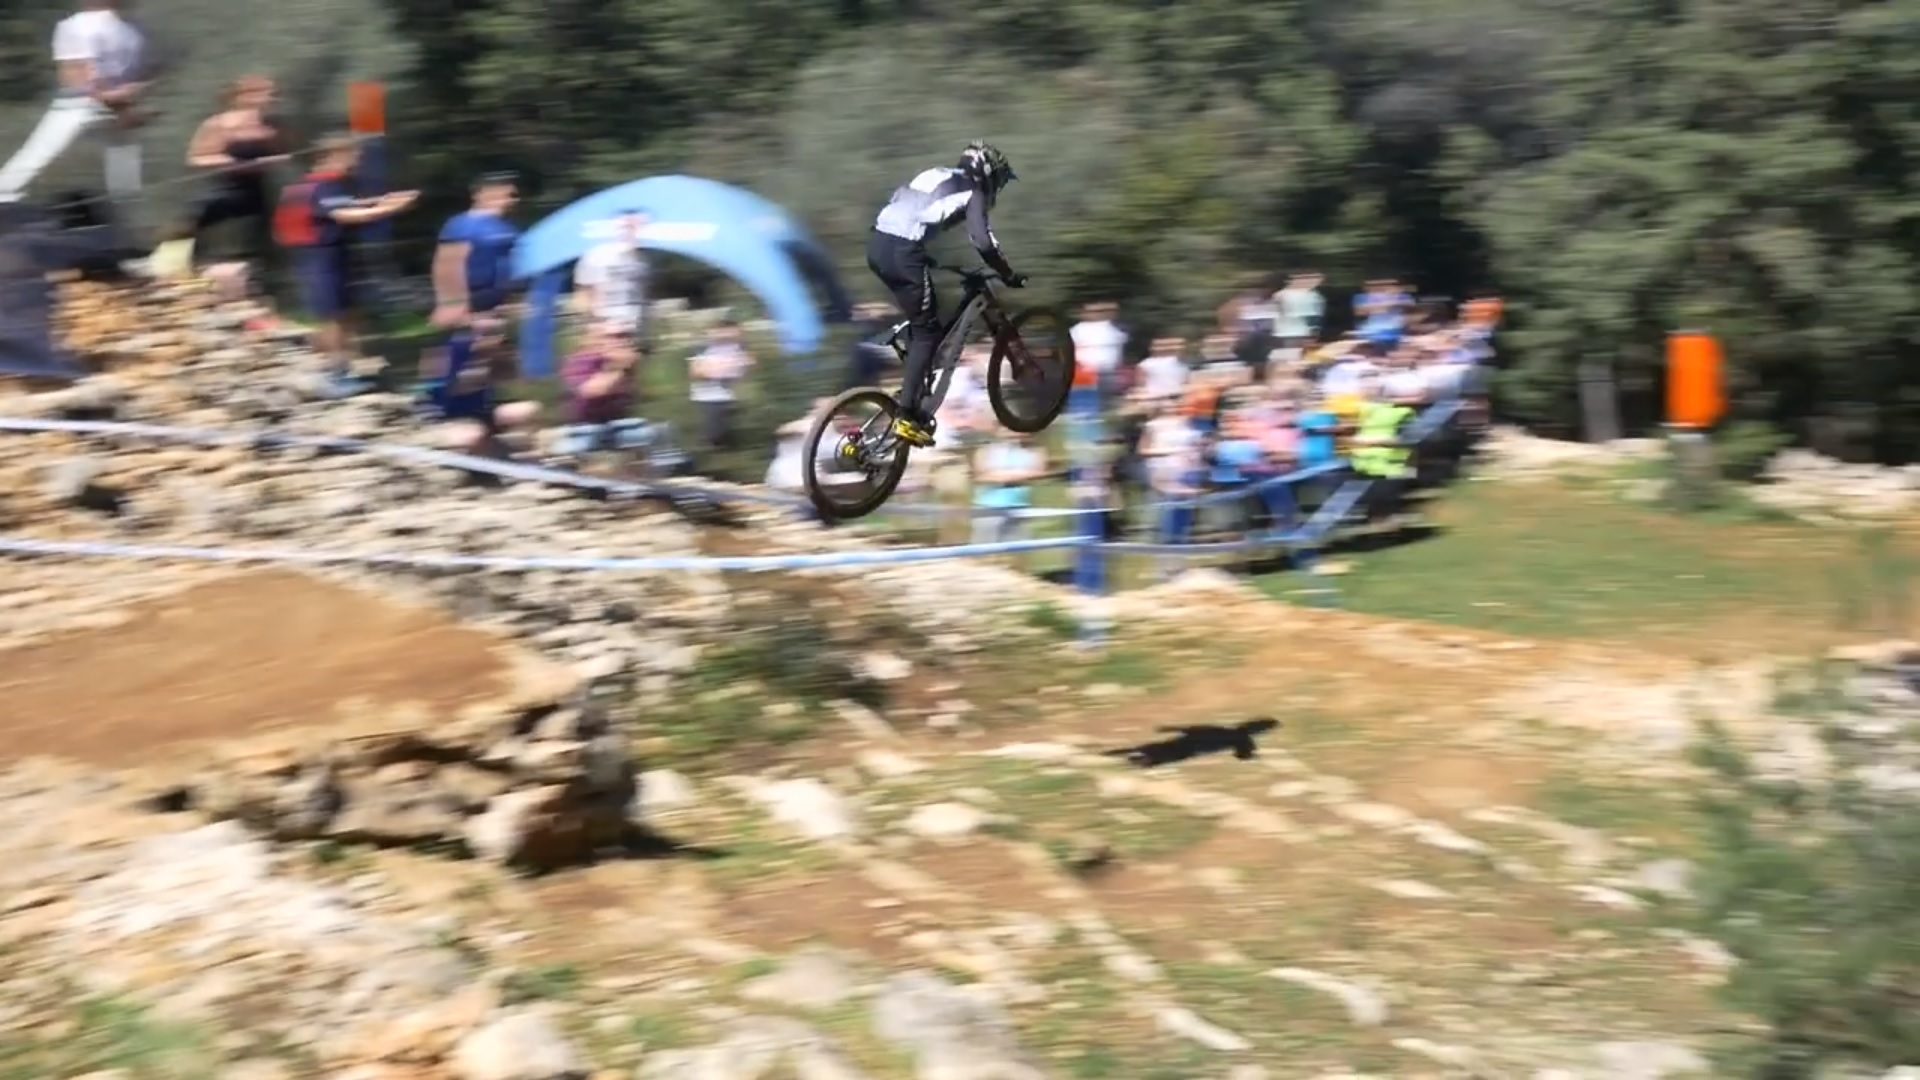 'This is Not a Bike Park' - 2020 Losinj World Cup Preview